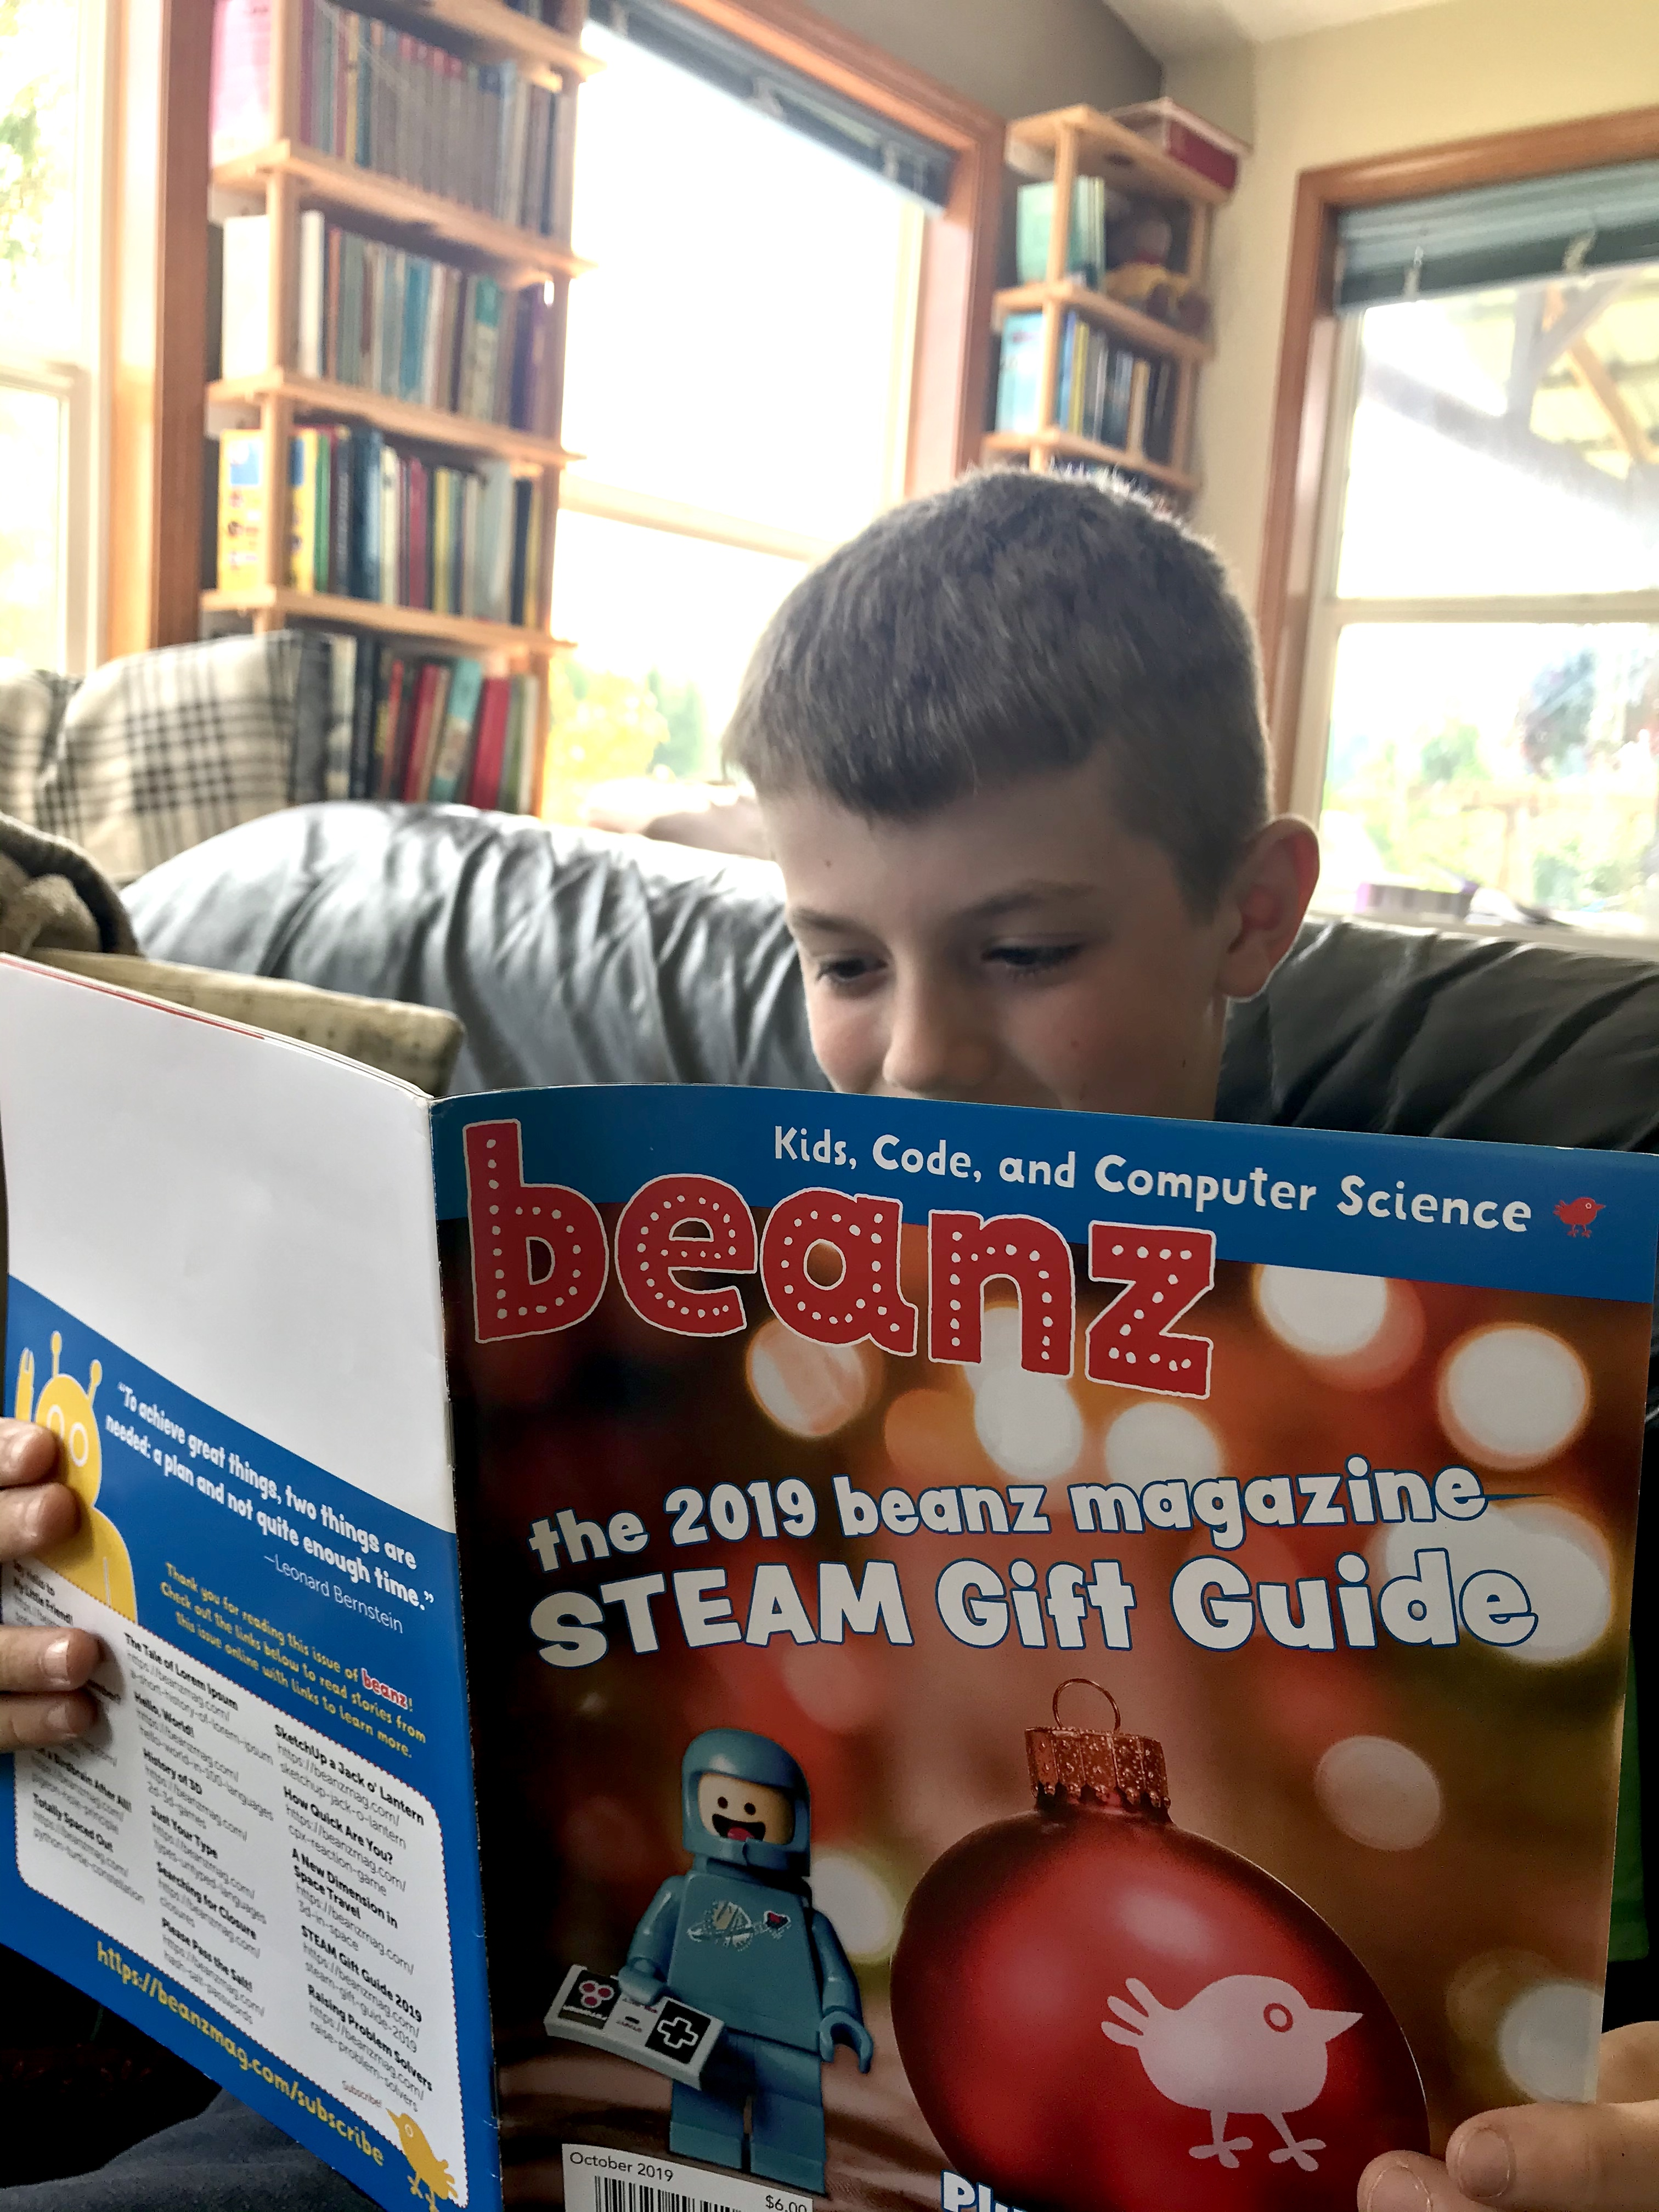 beanz: The Magazine for Kids, Code, and Computer Science